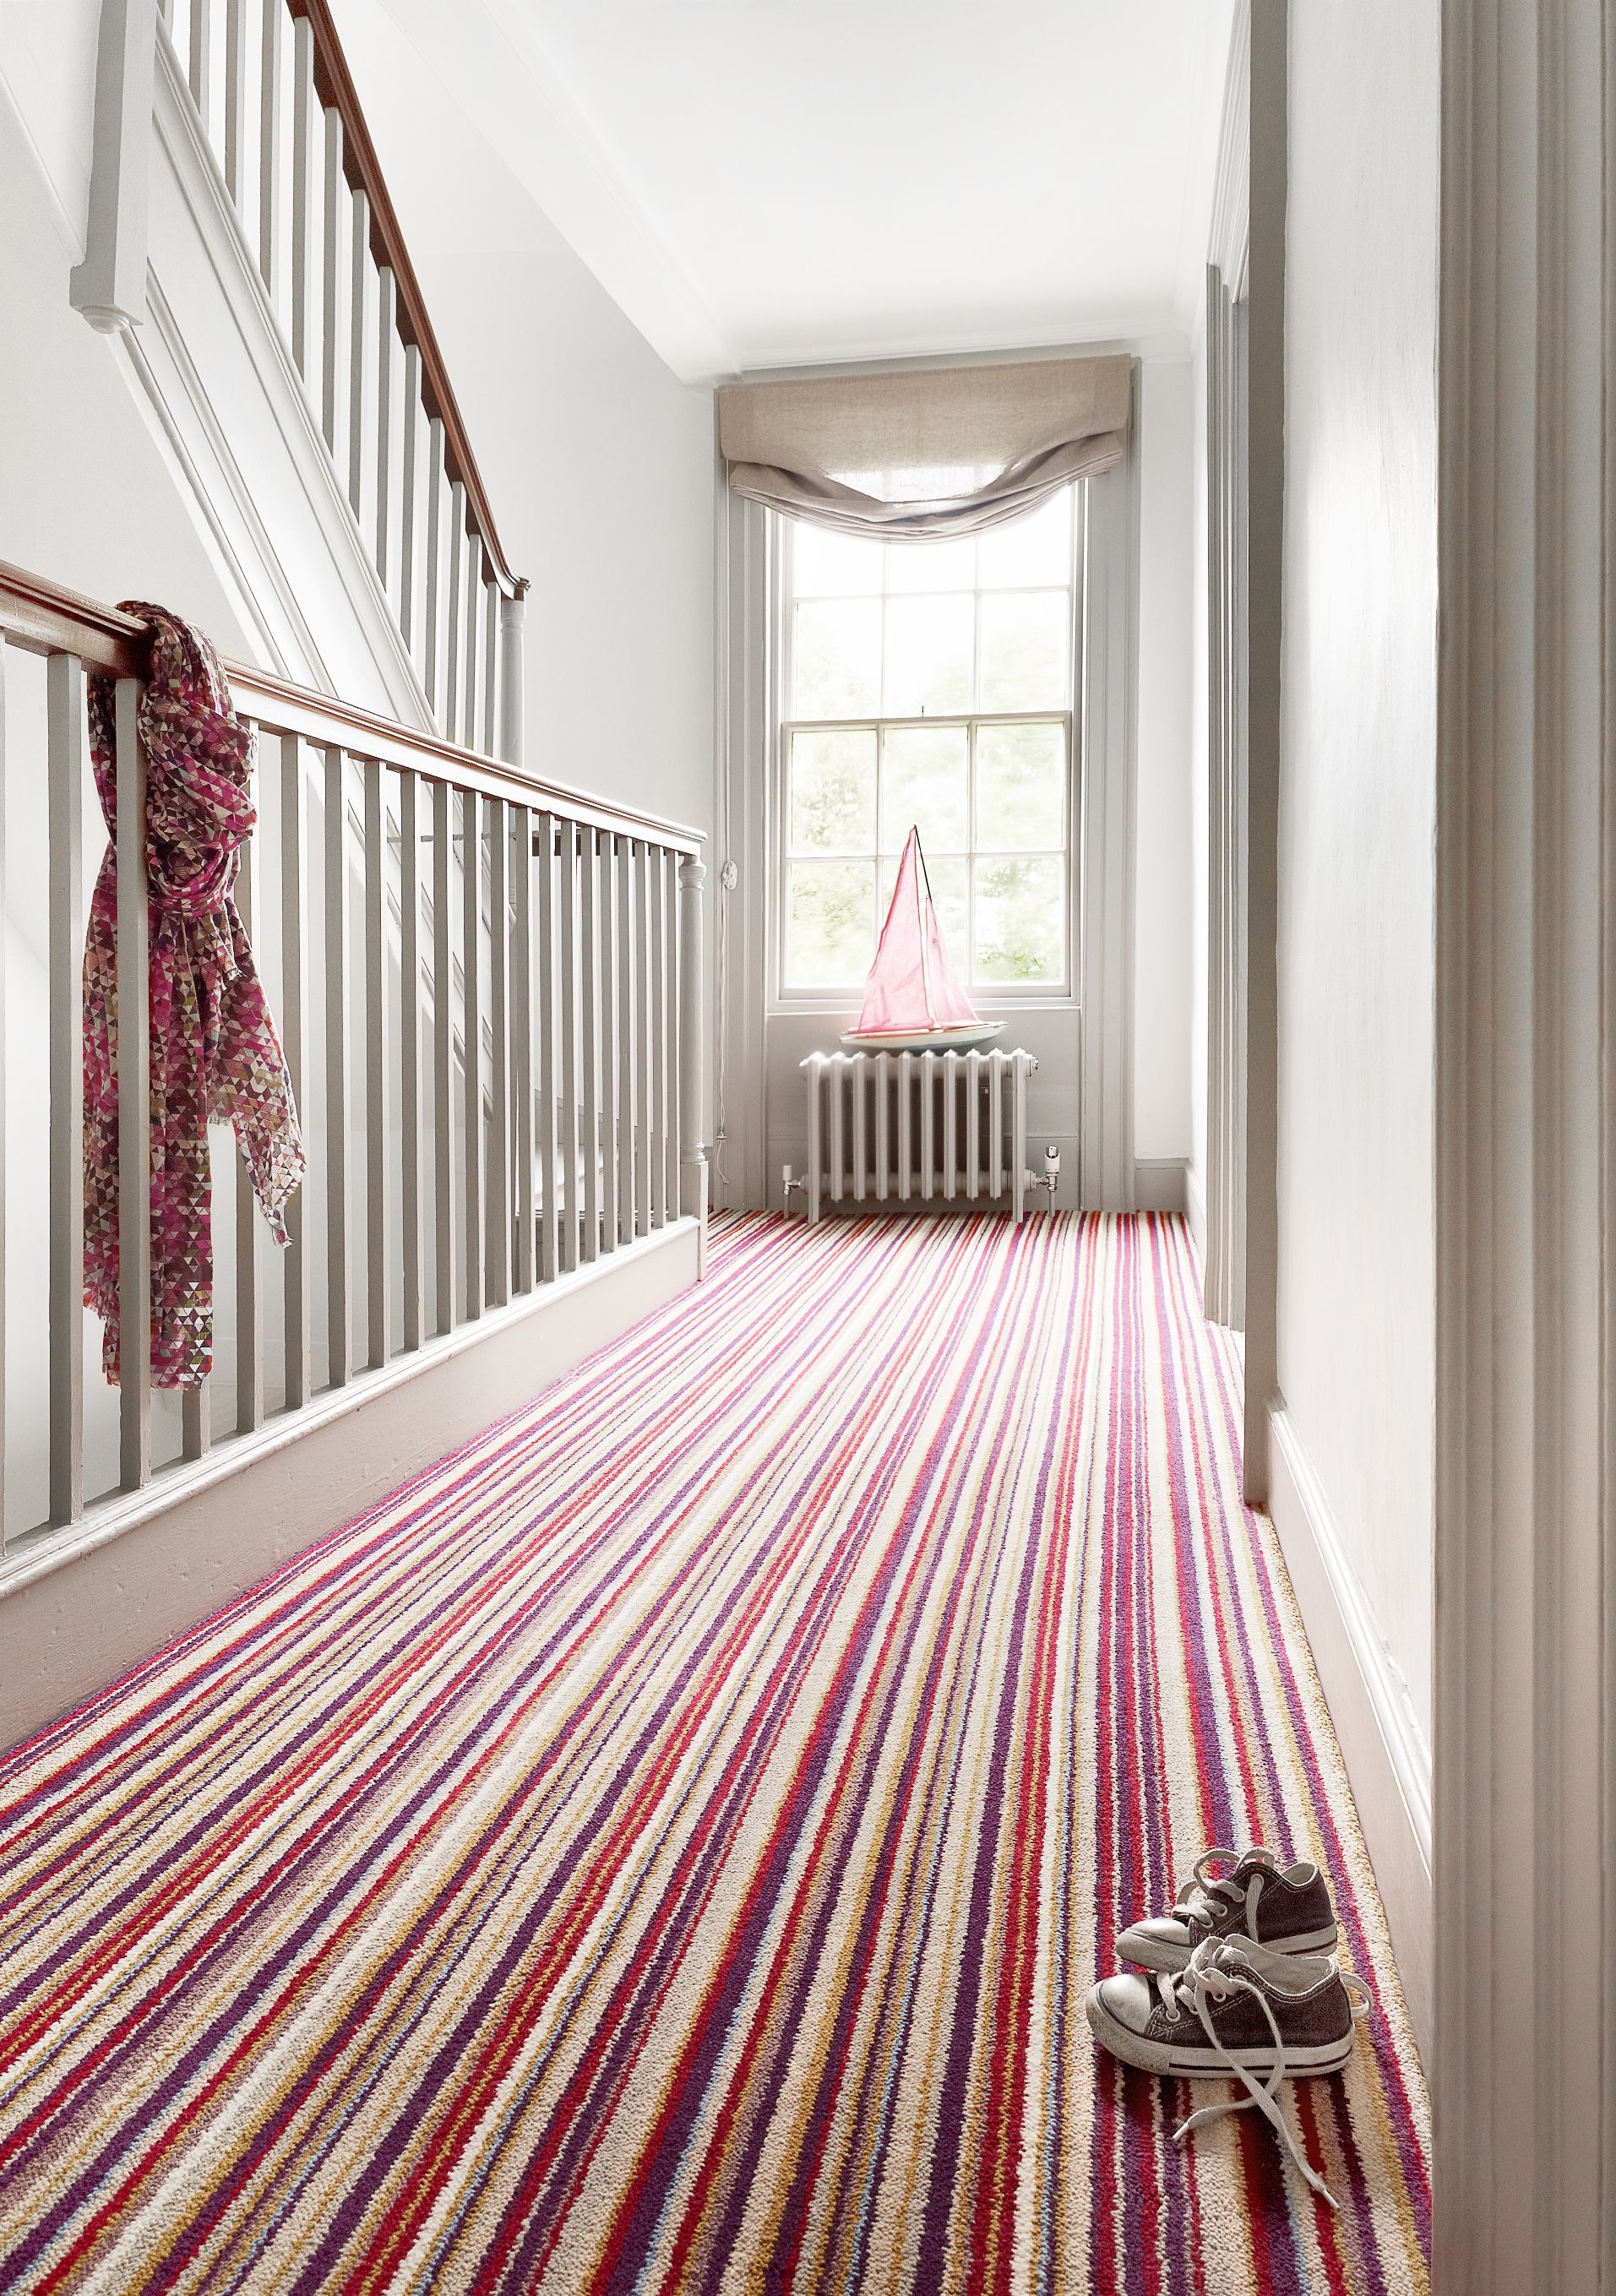 Best Sophie Conran For Axminster Carpets Day At The Beach In 400 x 300